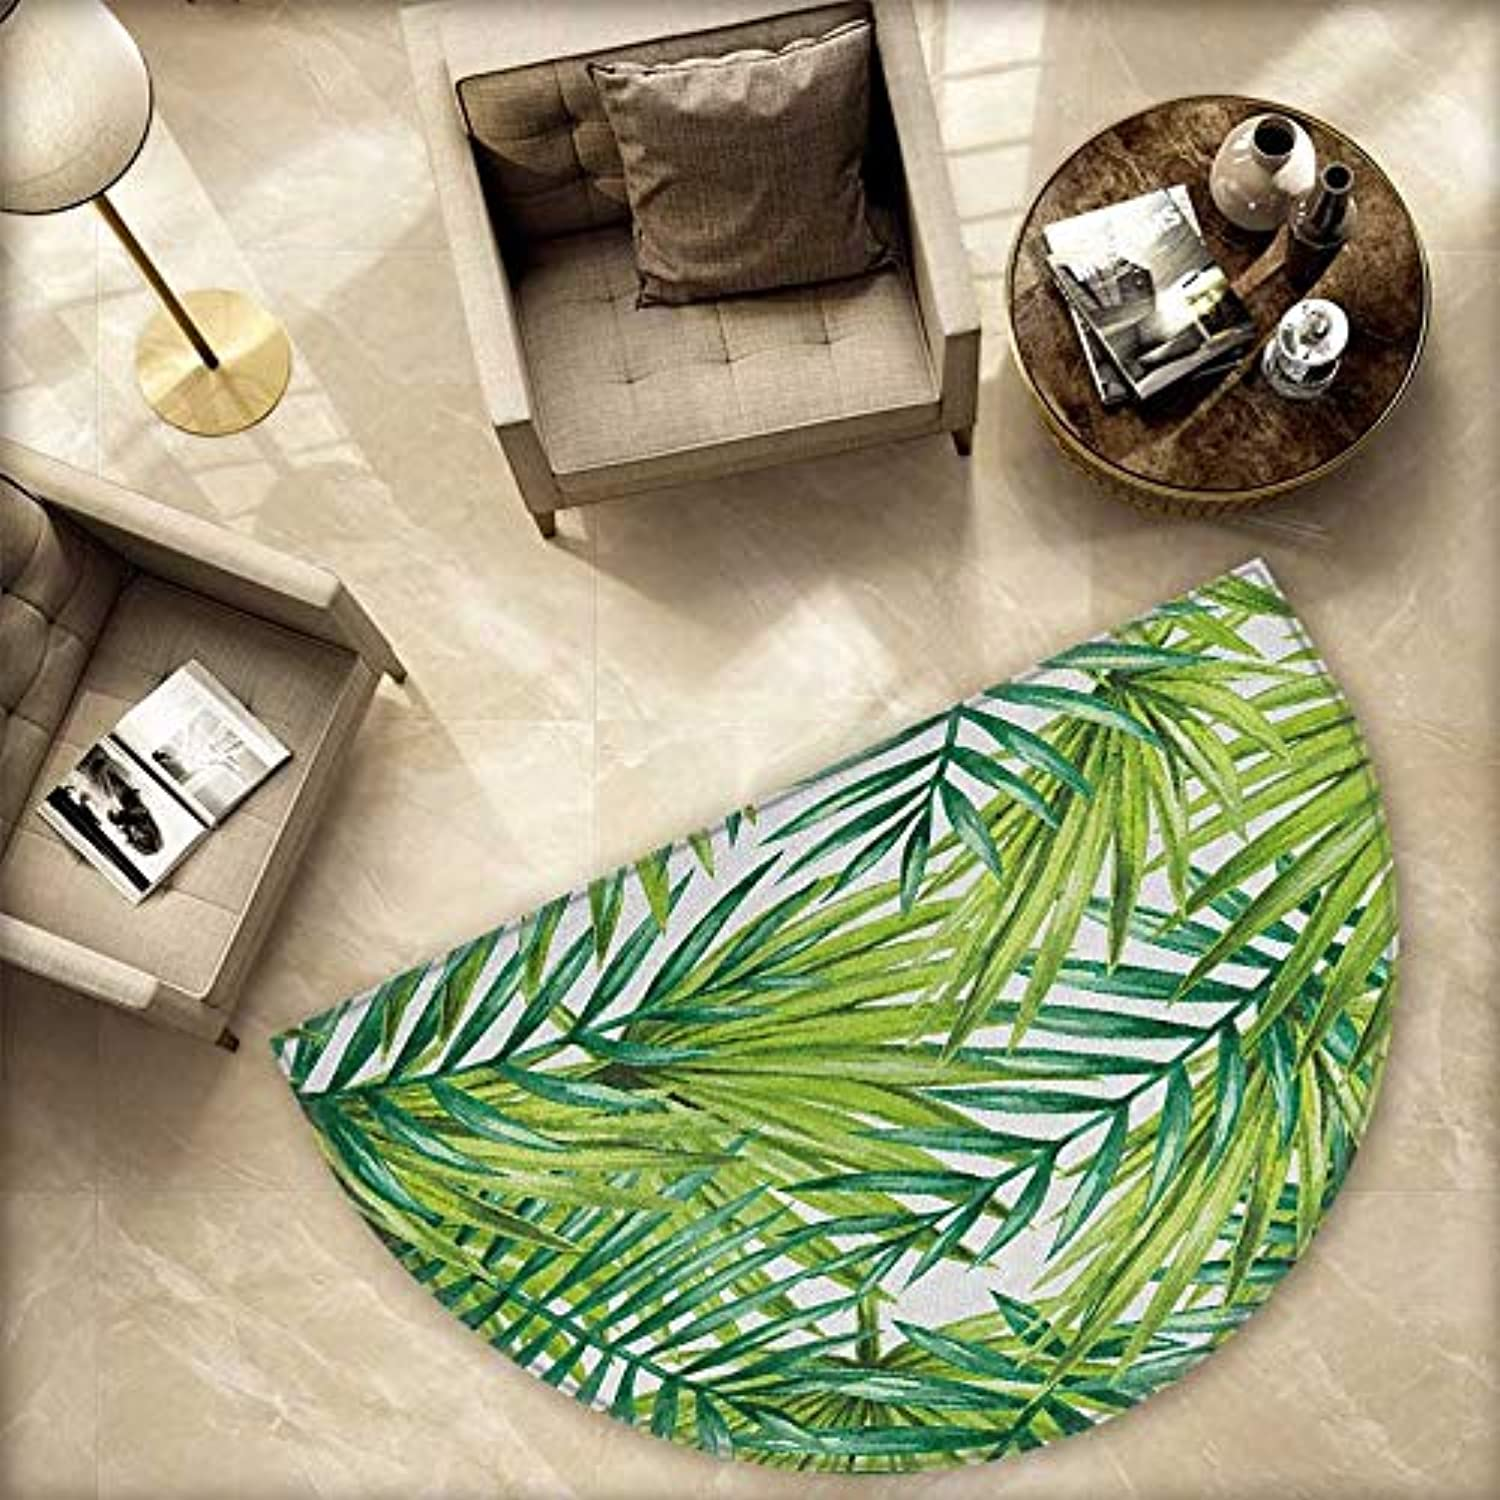 Plant Semicircle Doormat Watercolor Tropical Palm Leaves colorful Illustration Natural Feelings Halfmoon doormats H 78.7  xD 118.1  Fern Green Lime Green